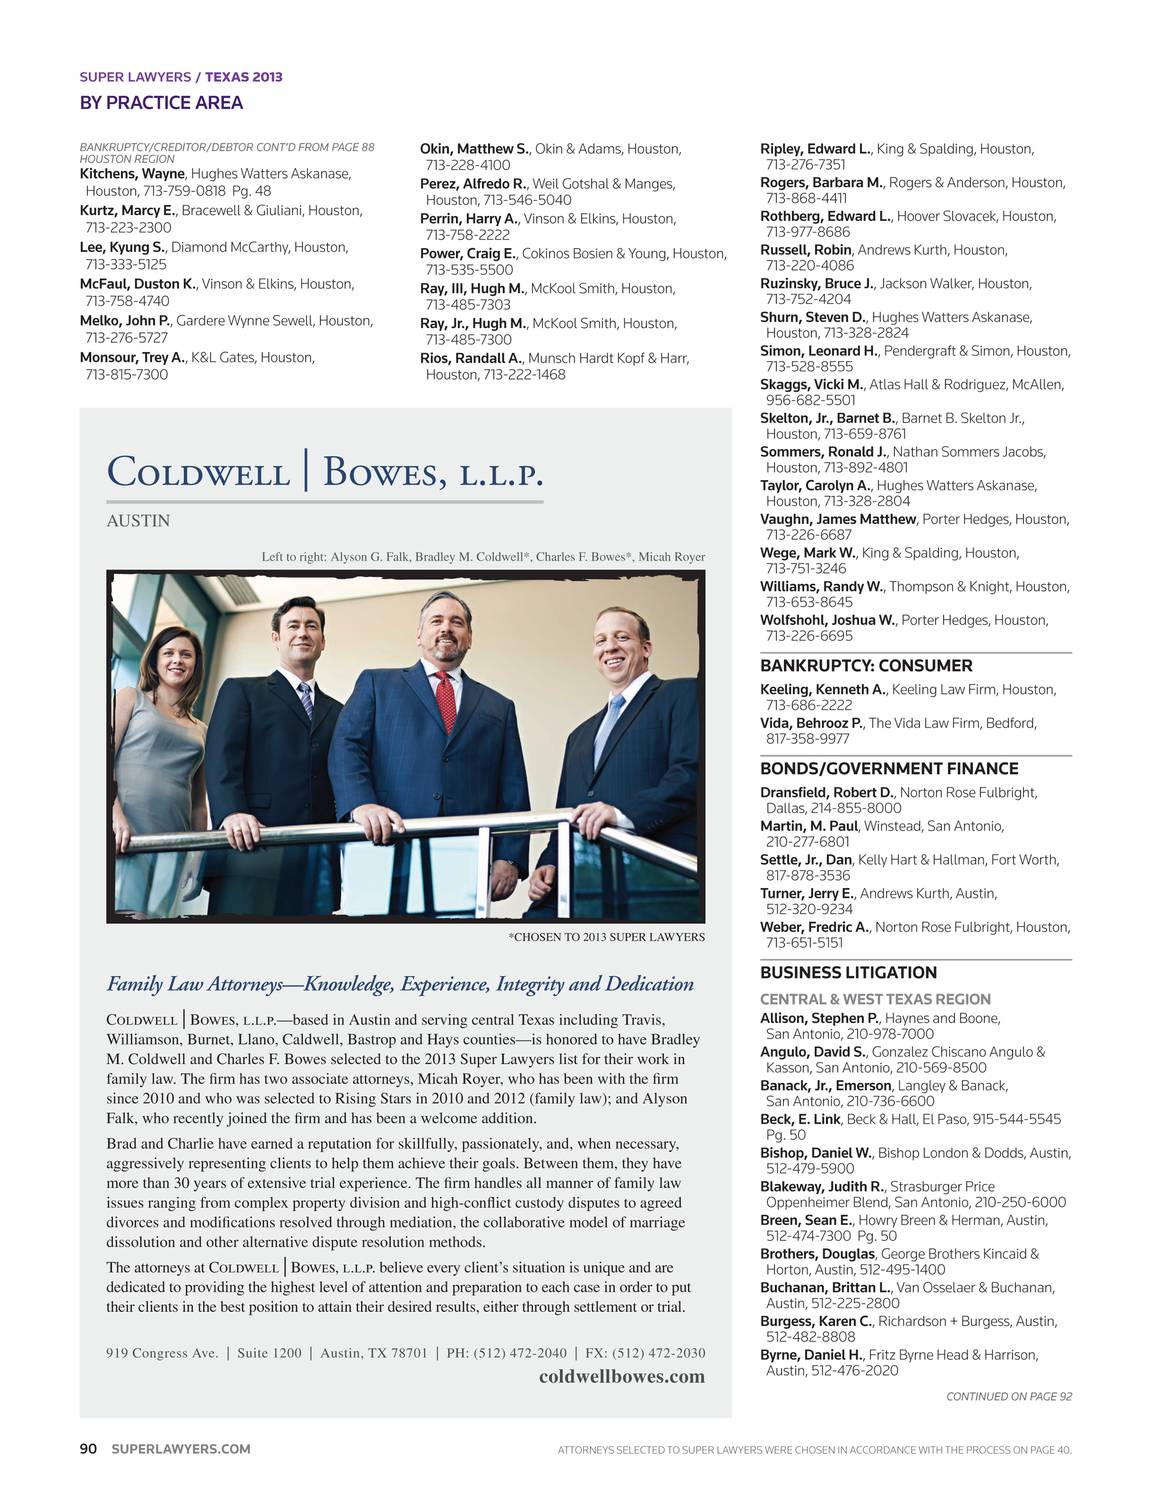 Super Lawyers - Texas 2013 - page 90